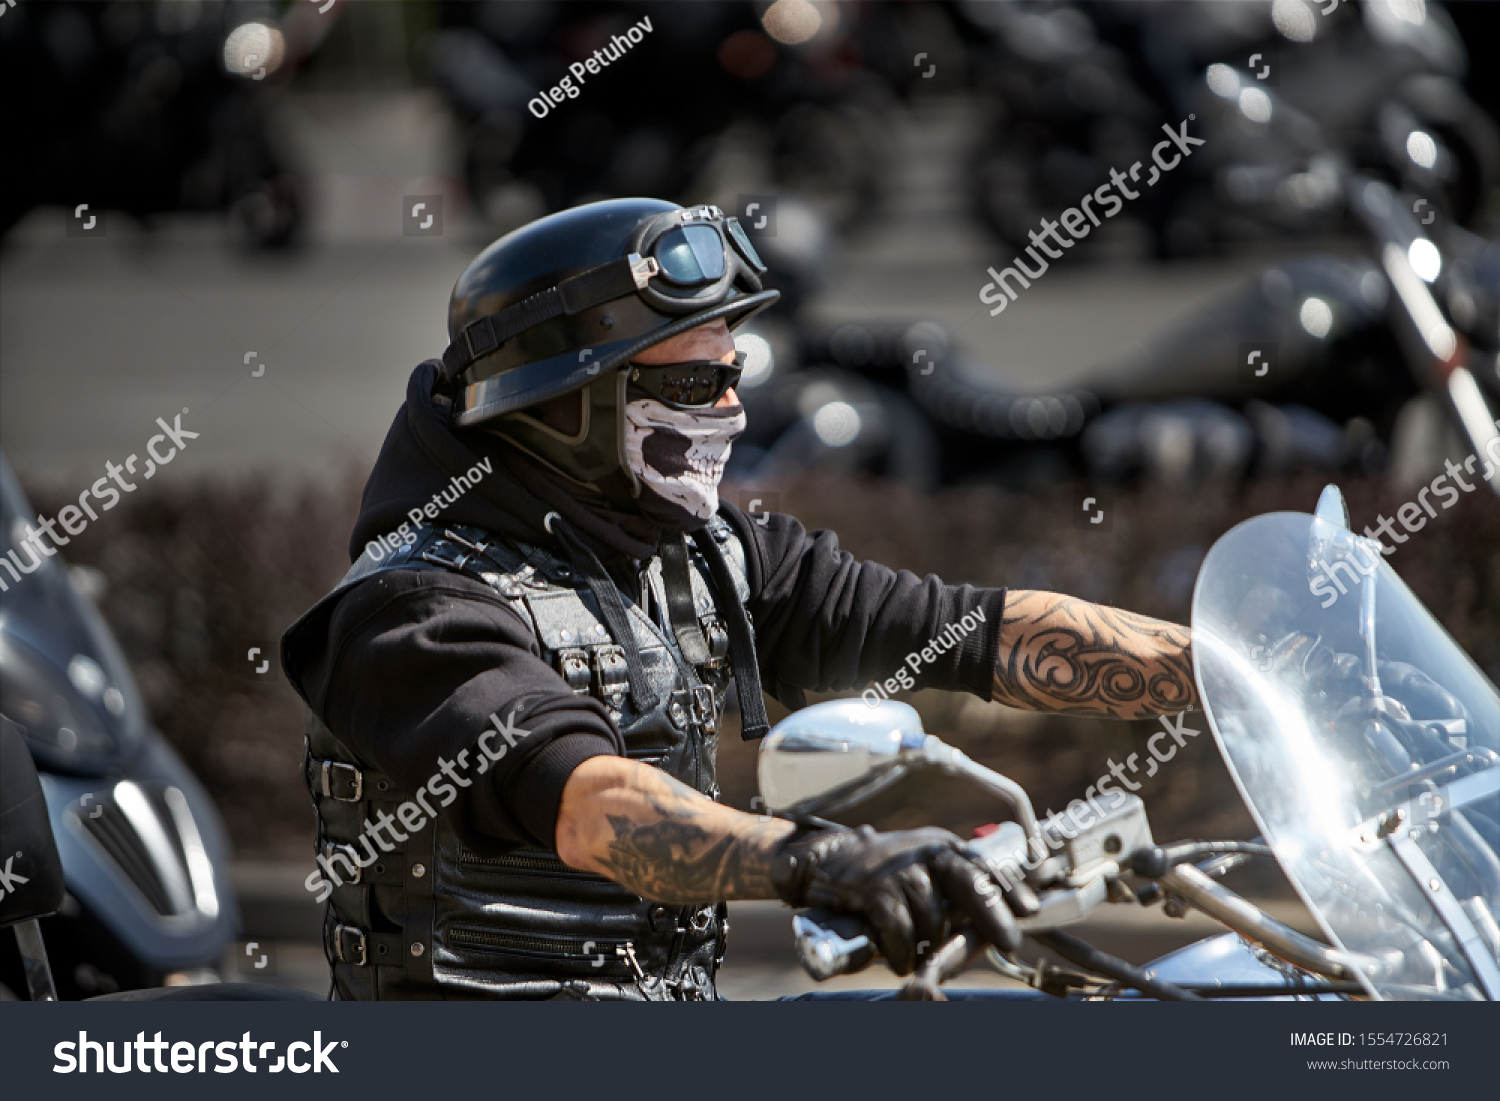 Brutal biker with skeleton mask. unidentified motorcycle rider in a mask takes part in a motorcycle parade           #1554726821